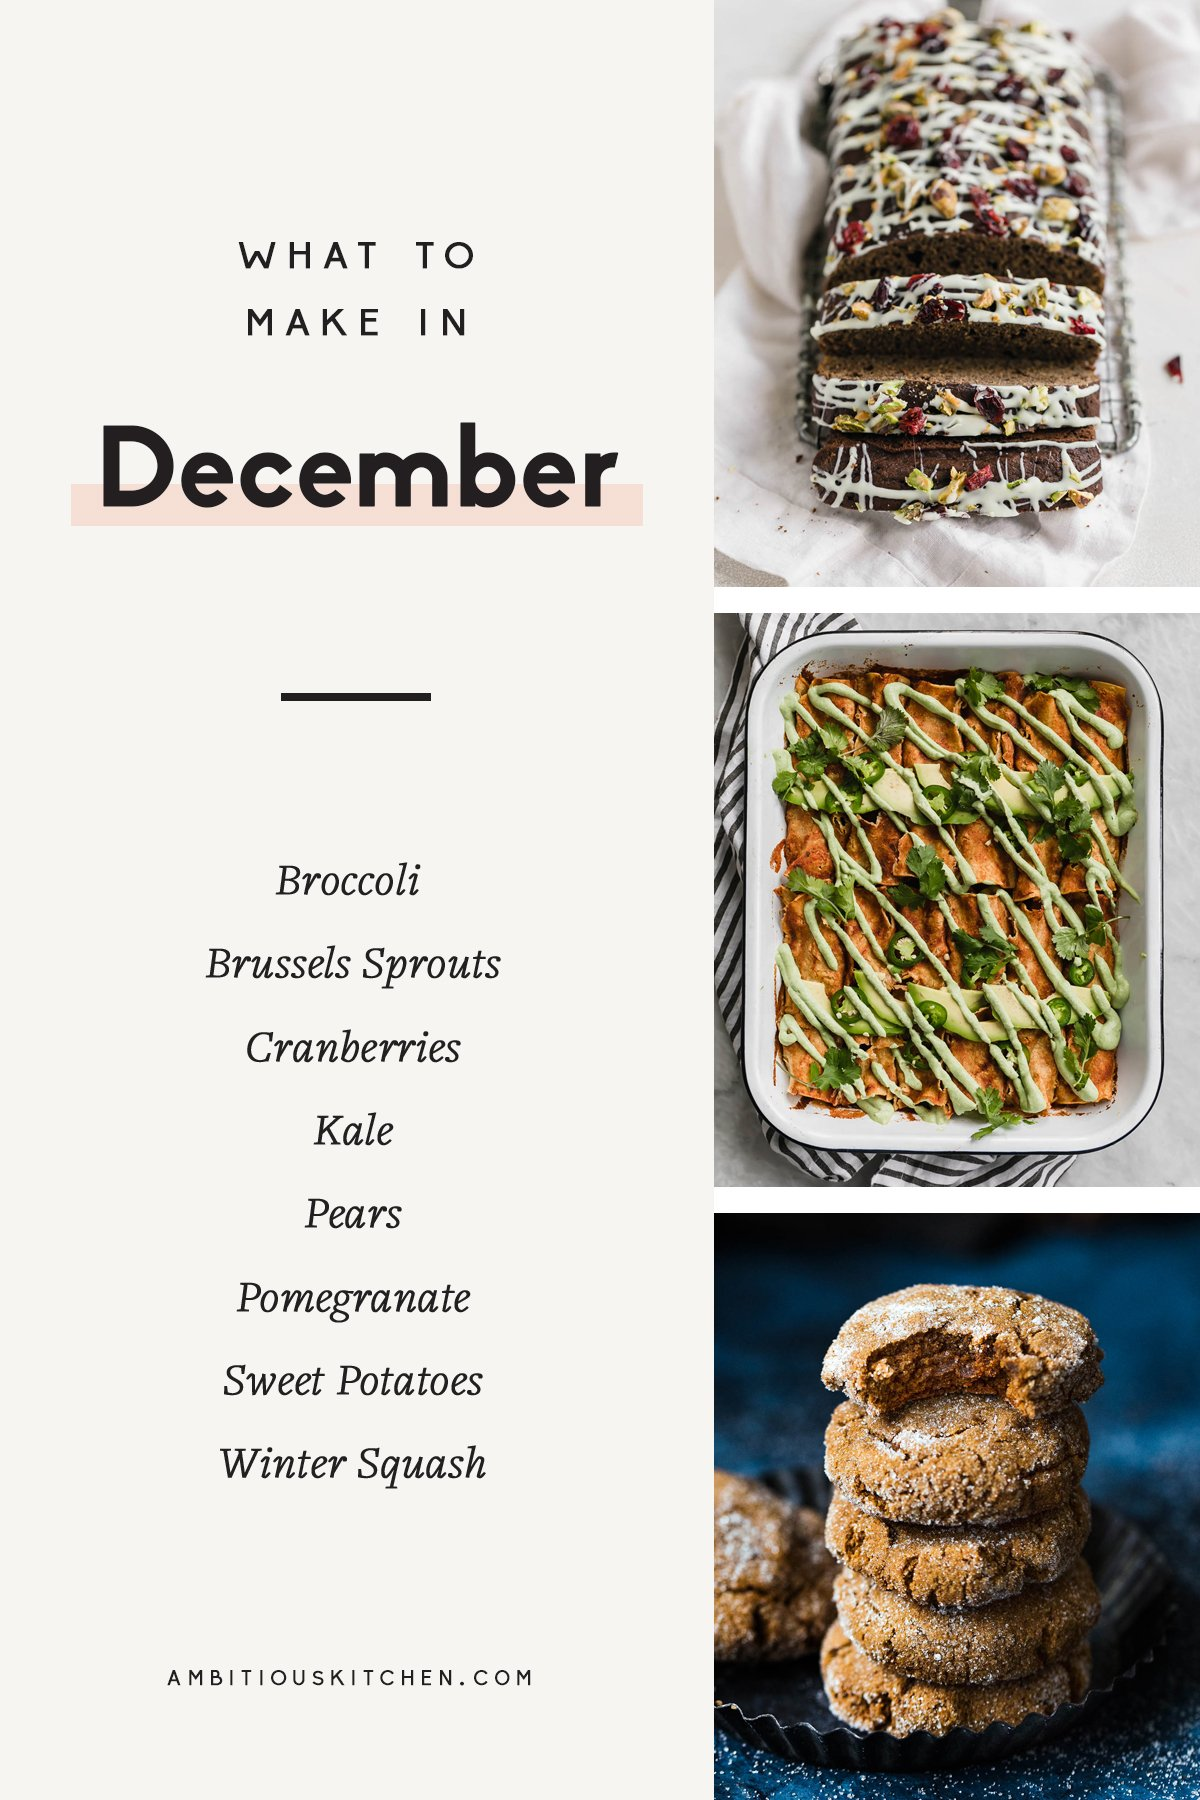 31 amazing, seasonal recipes to make in December! These are the best of the best in breakfasts & brunches, cozy soups, filling salads to bring to work, healthy dinners, and incredible desserts.